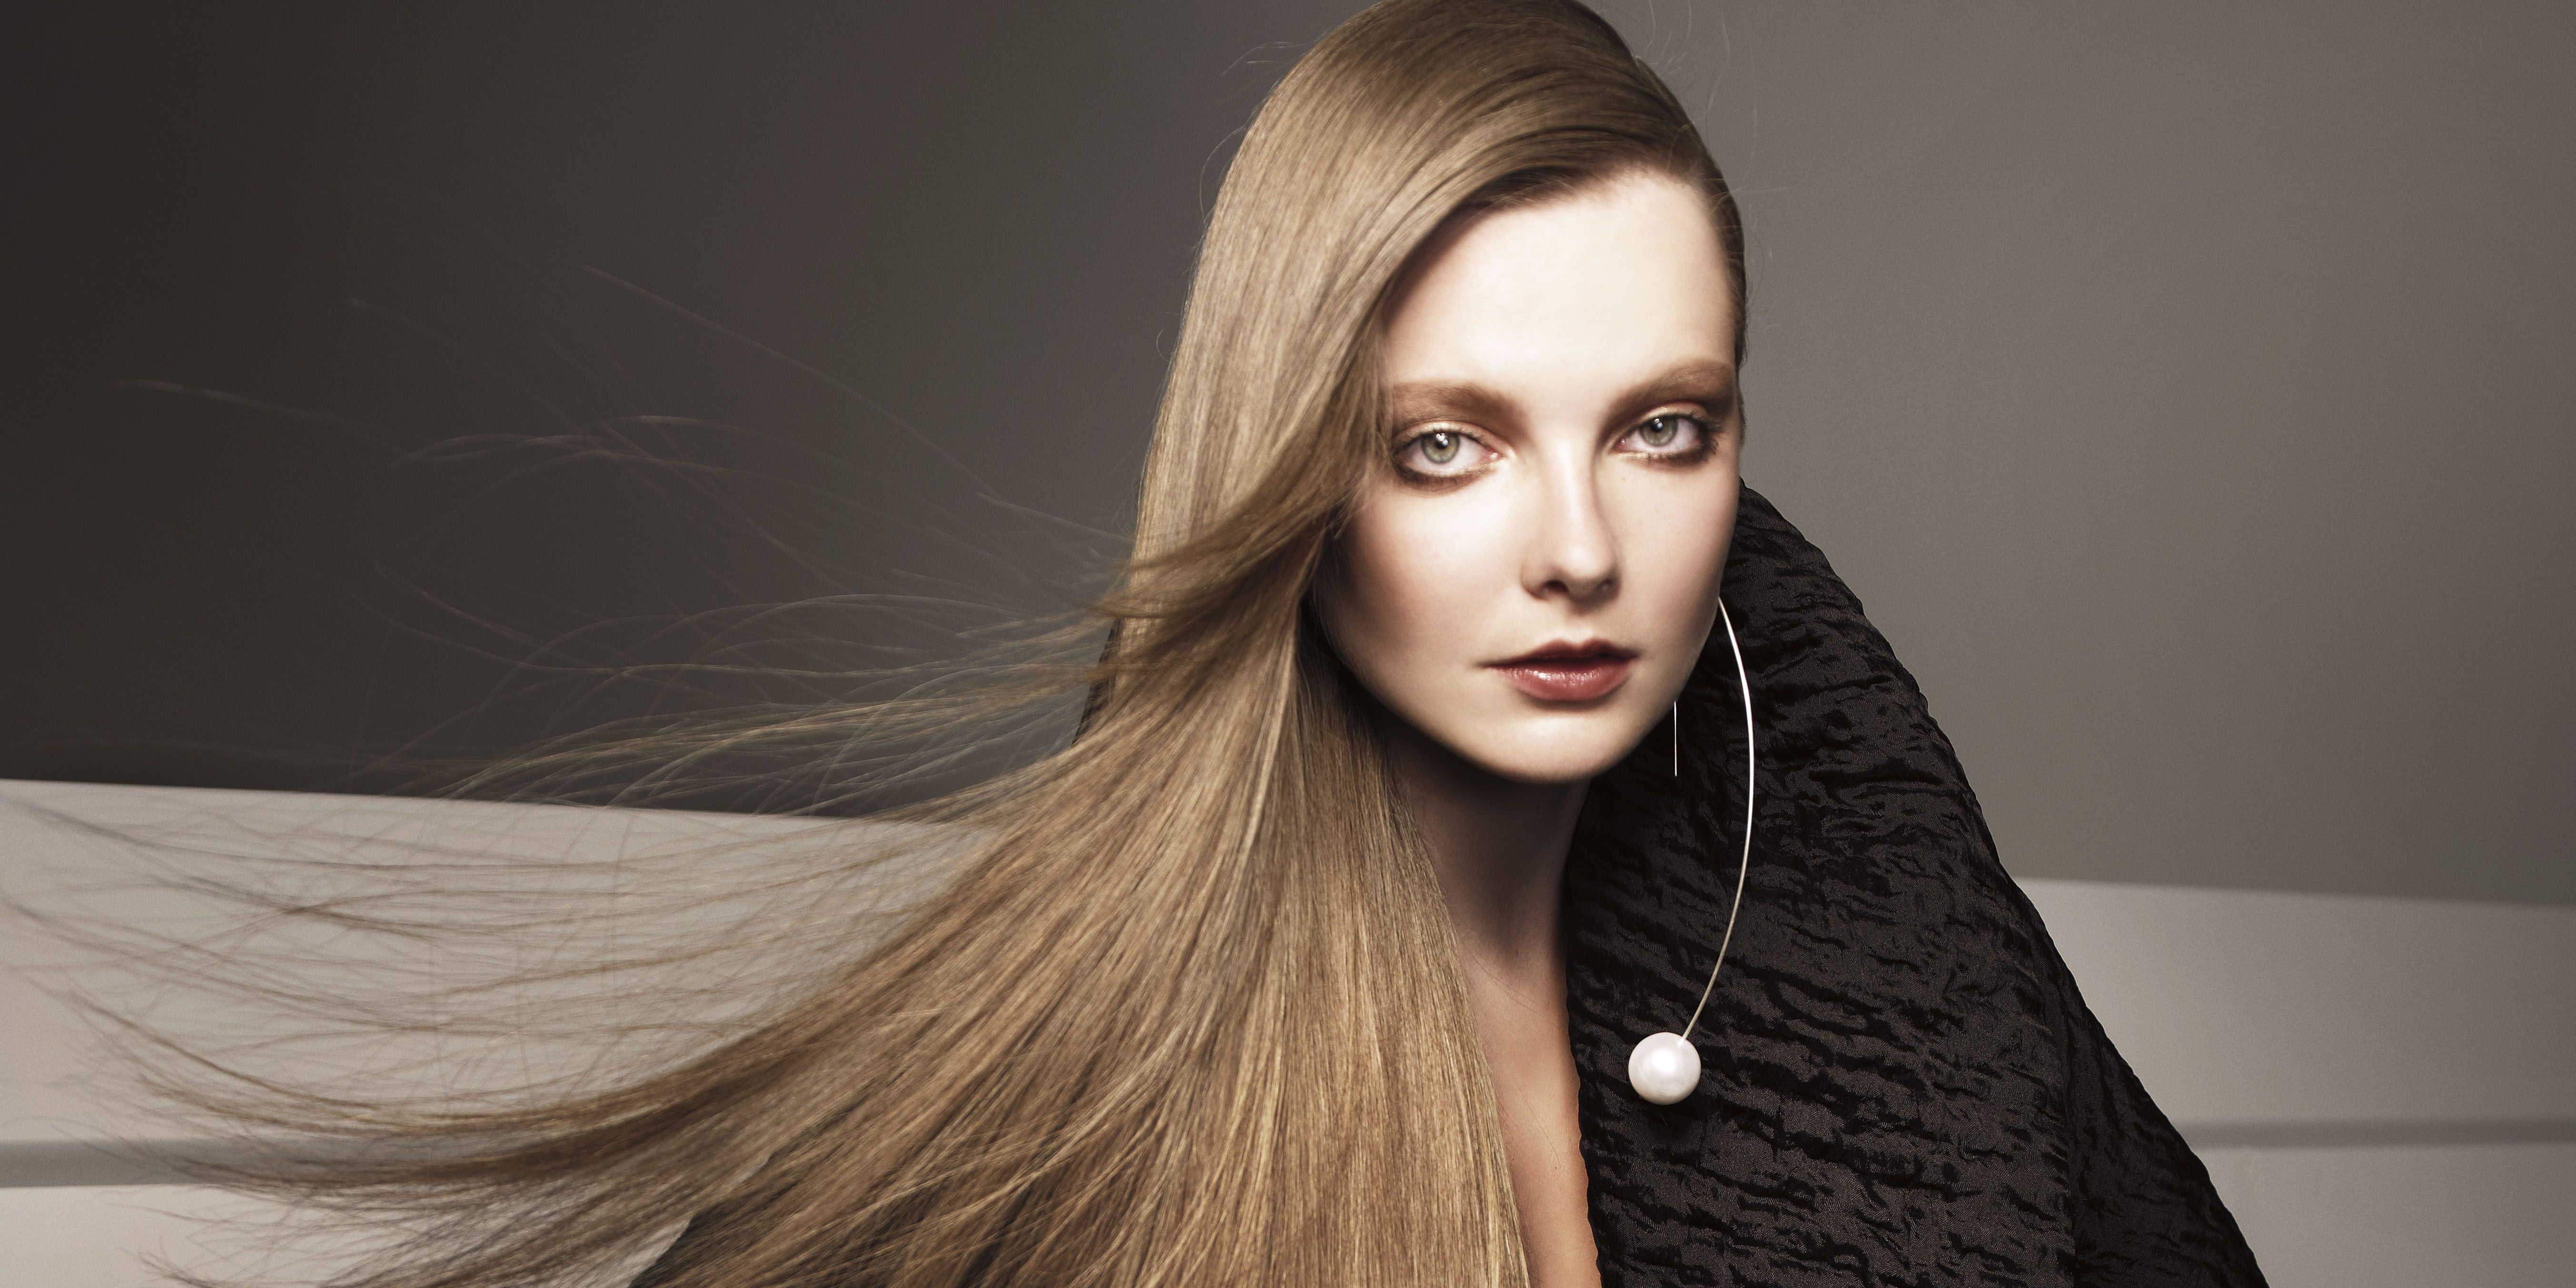 How To Make Your Hair Grow Faster Tips To Getting Longer Hair